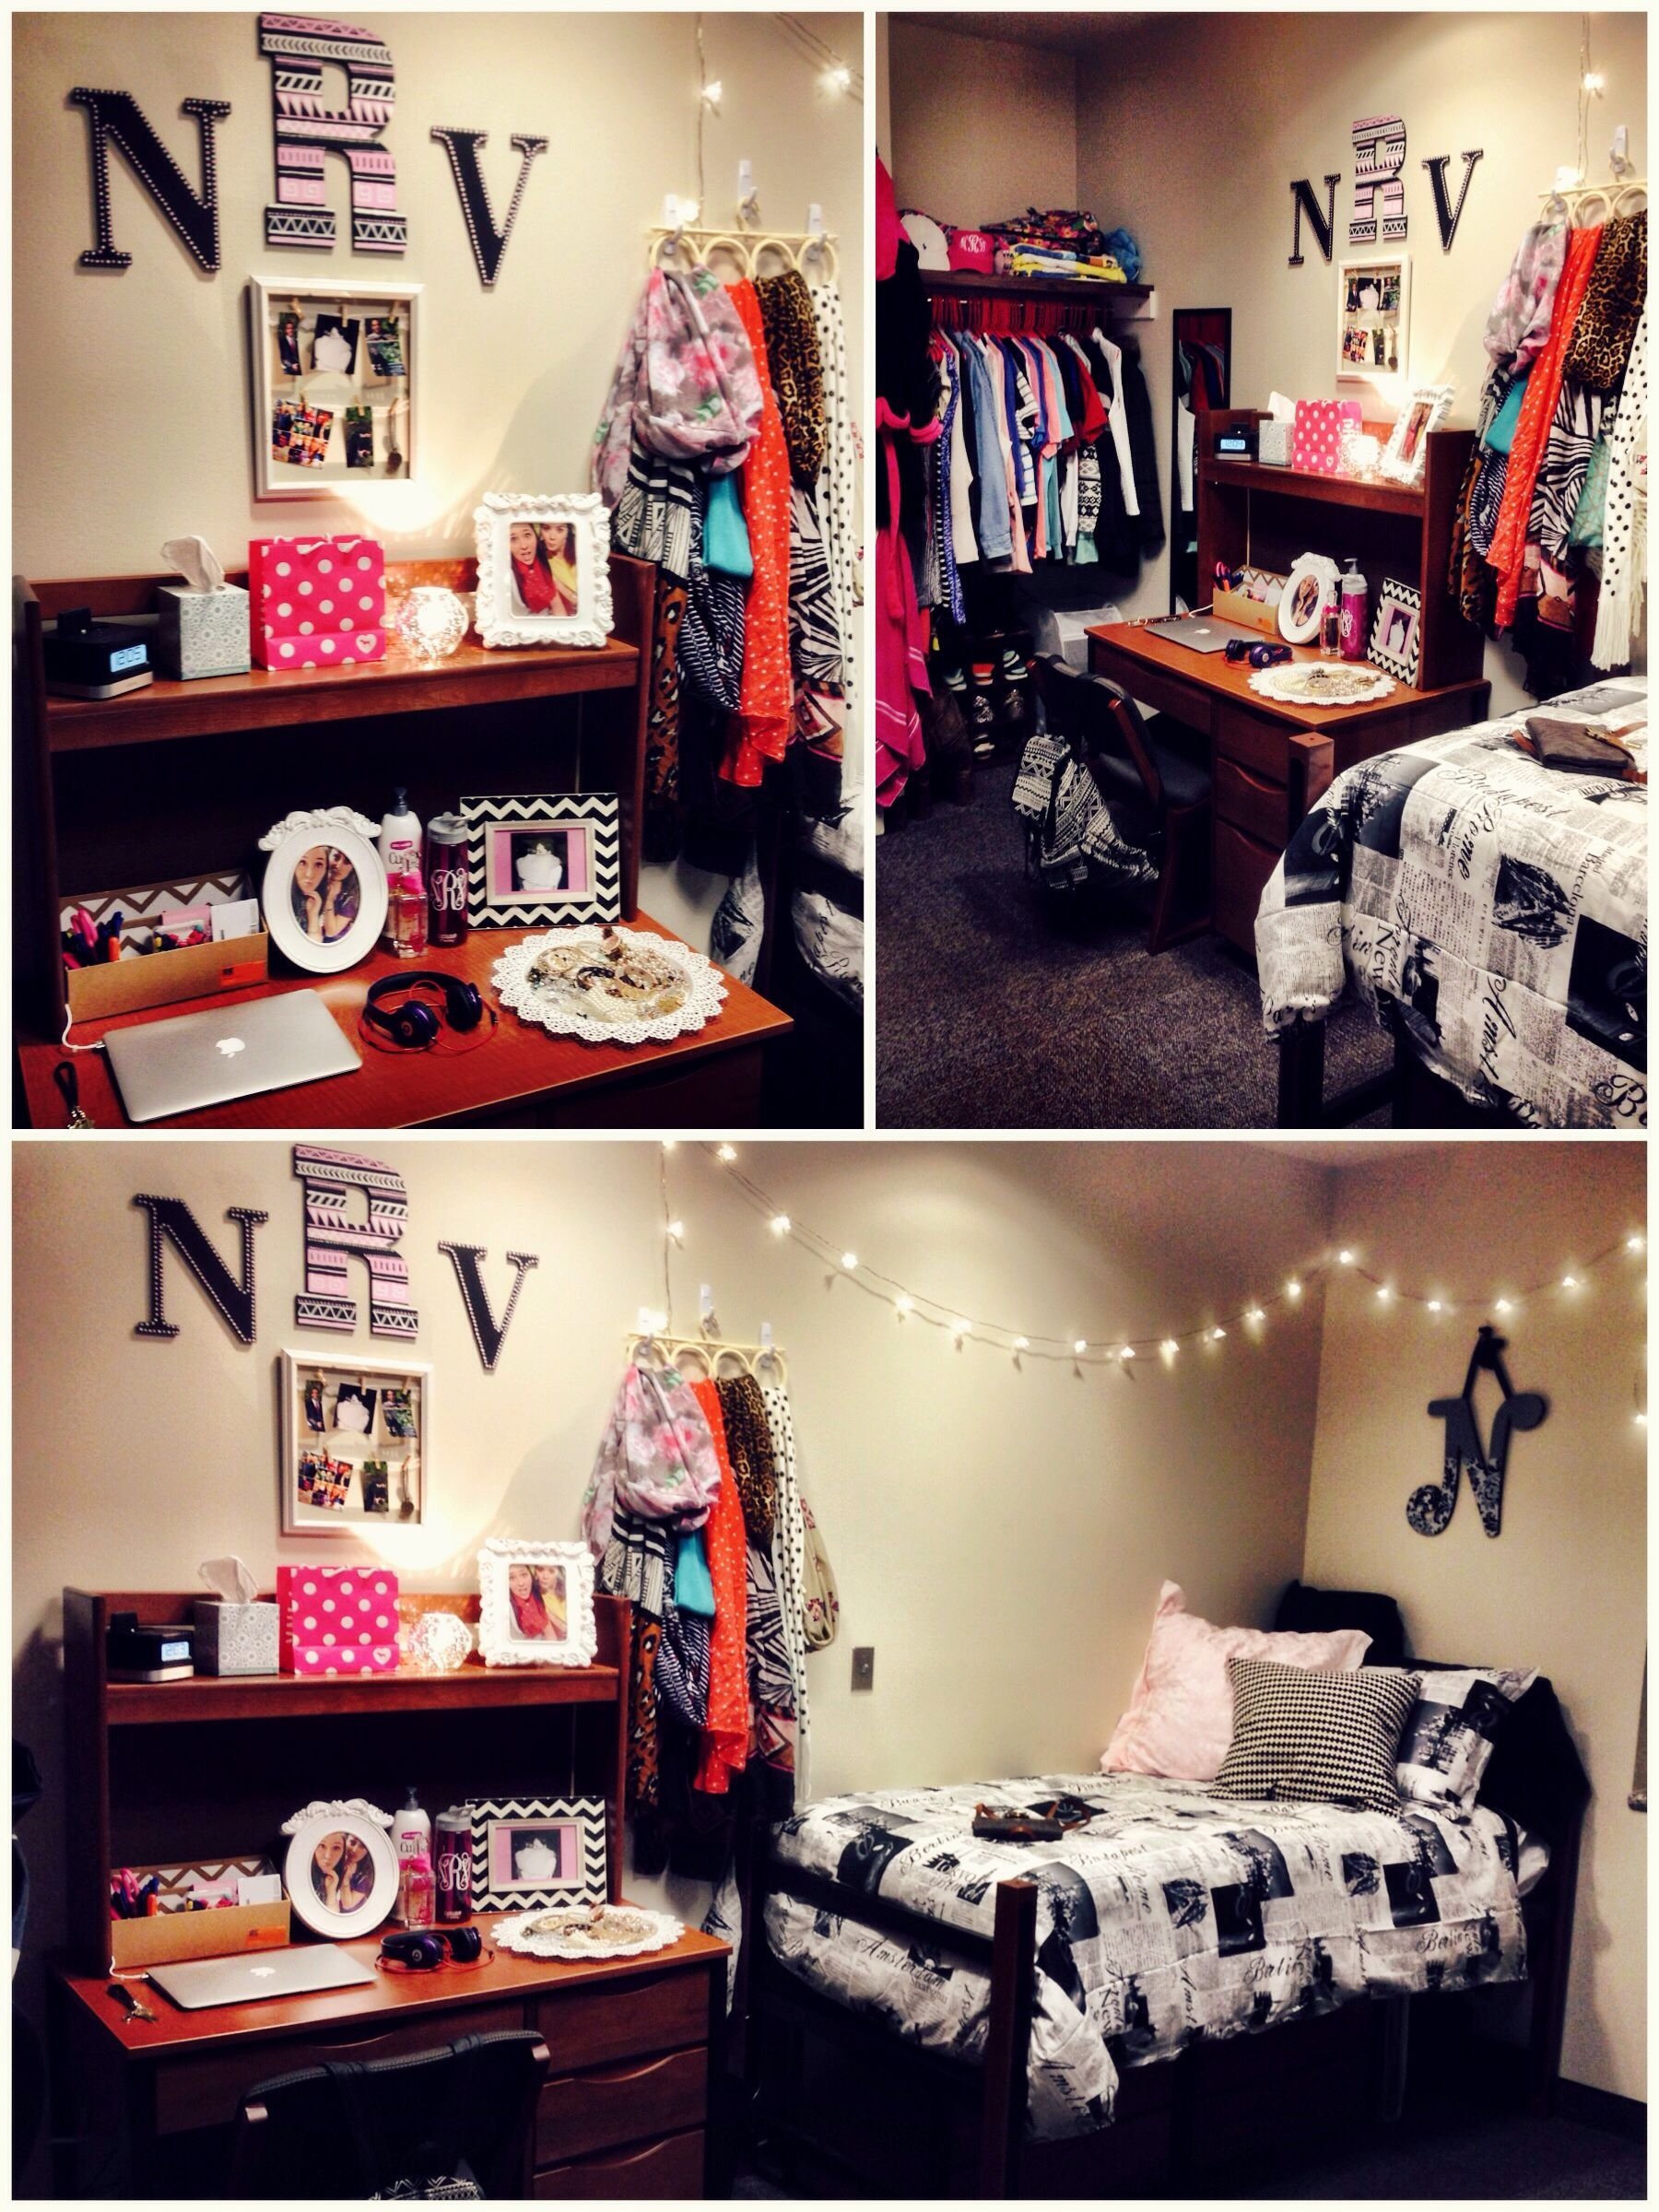 Pleasing Dorm Room Stores On Decorative Pin by Bridge It On College On Dorm Room Stores